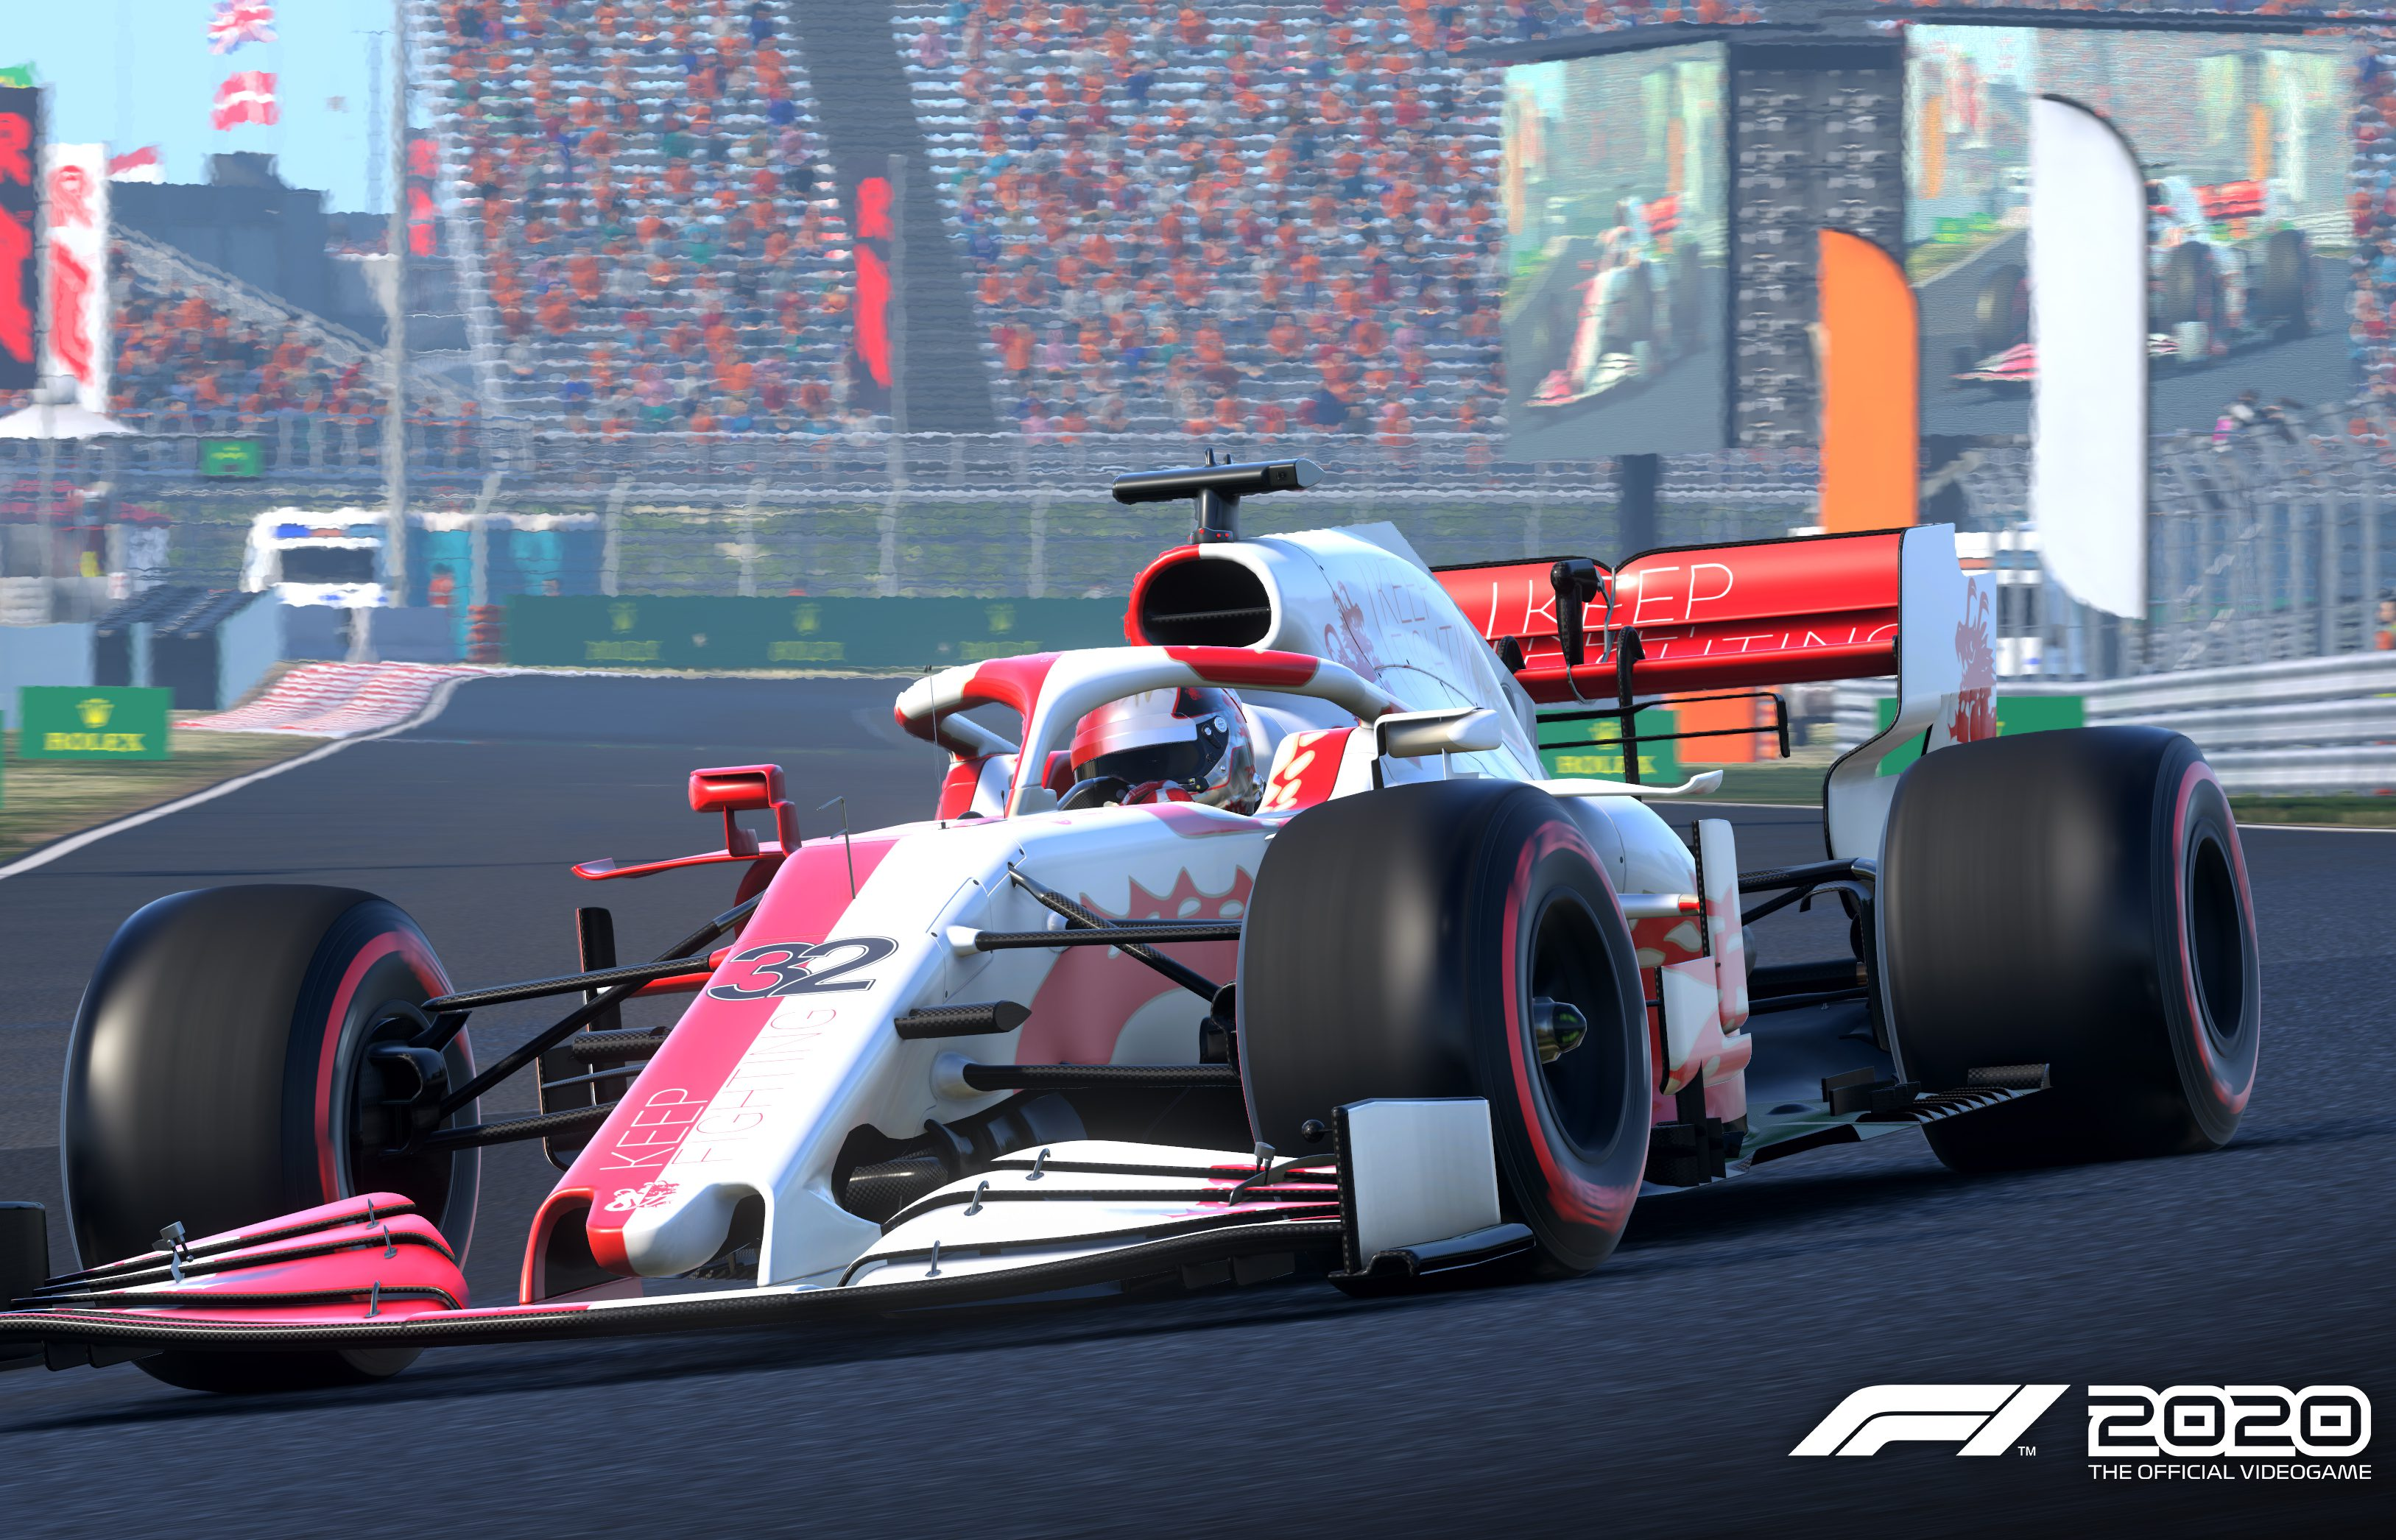 F1 2020 Supports Keep Fighting Foundation In Honour Of Michael Schumacher Codemasters Racing Ahead